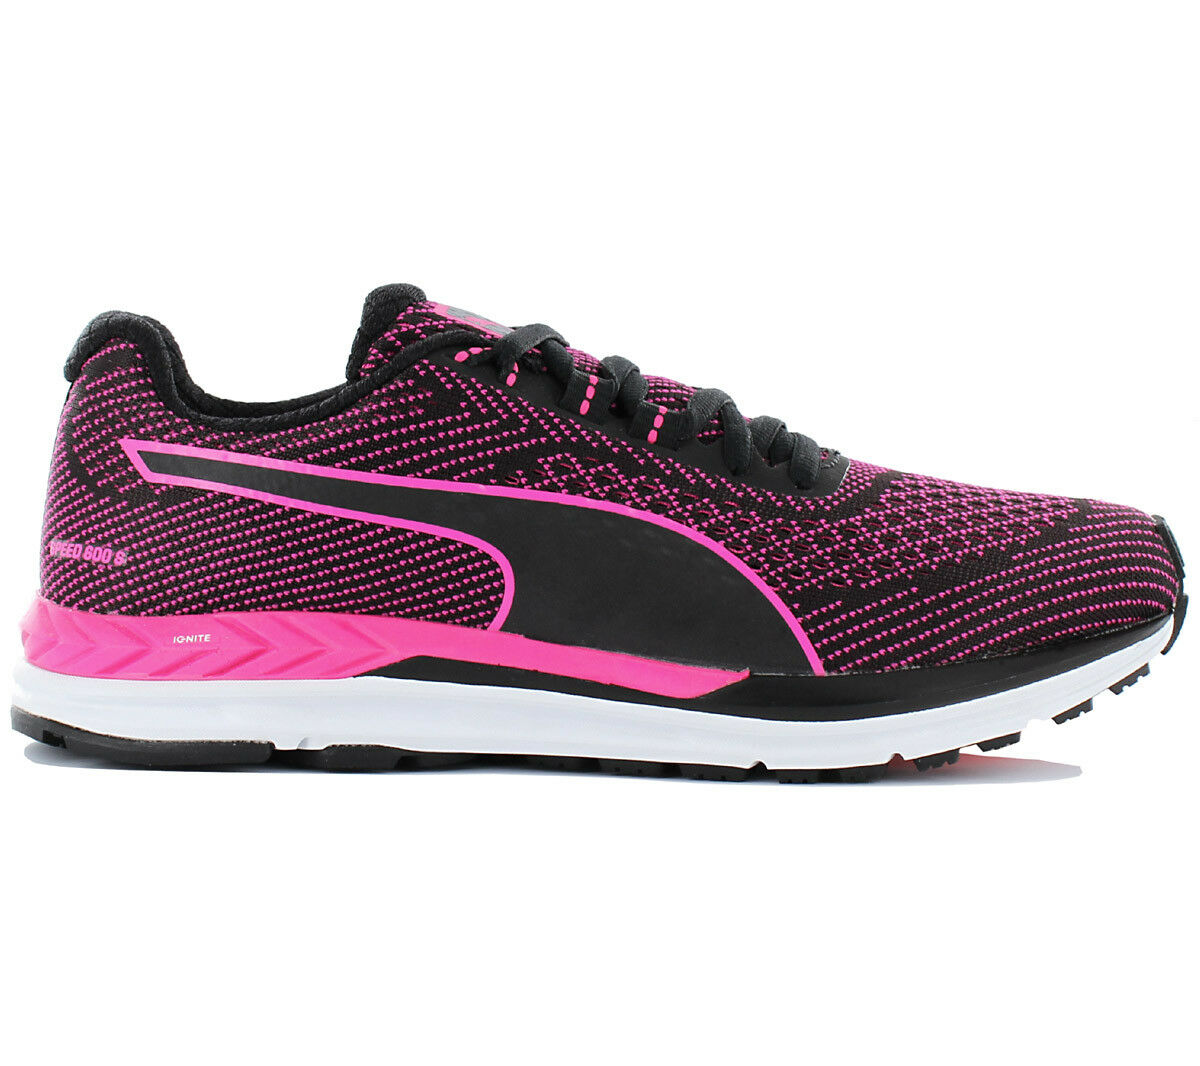 Puma Speed 600 S Ignite Ladies Running Shoes Shoes Sport Gym Training 189088 03